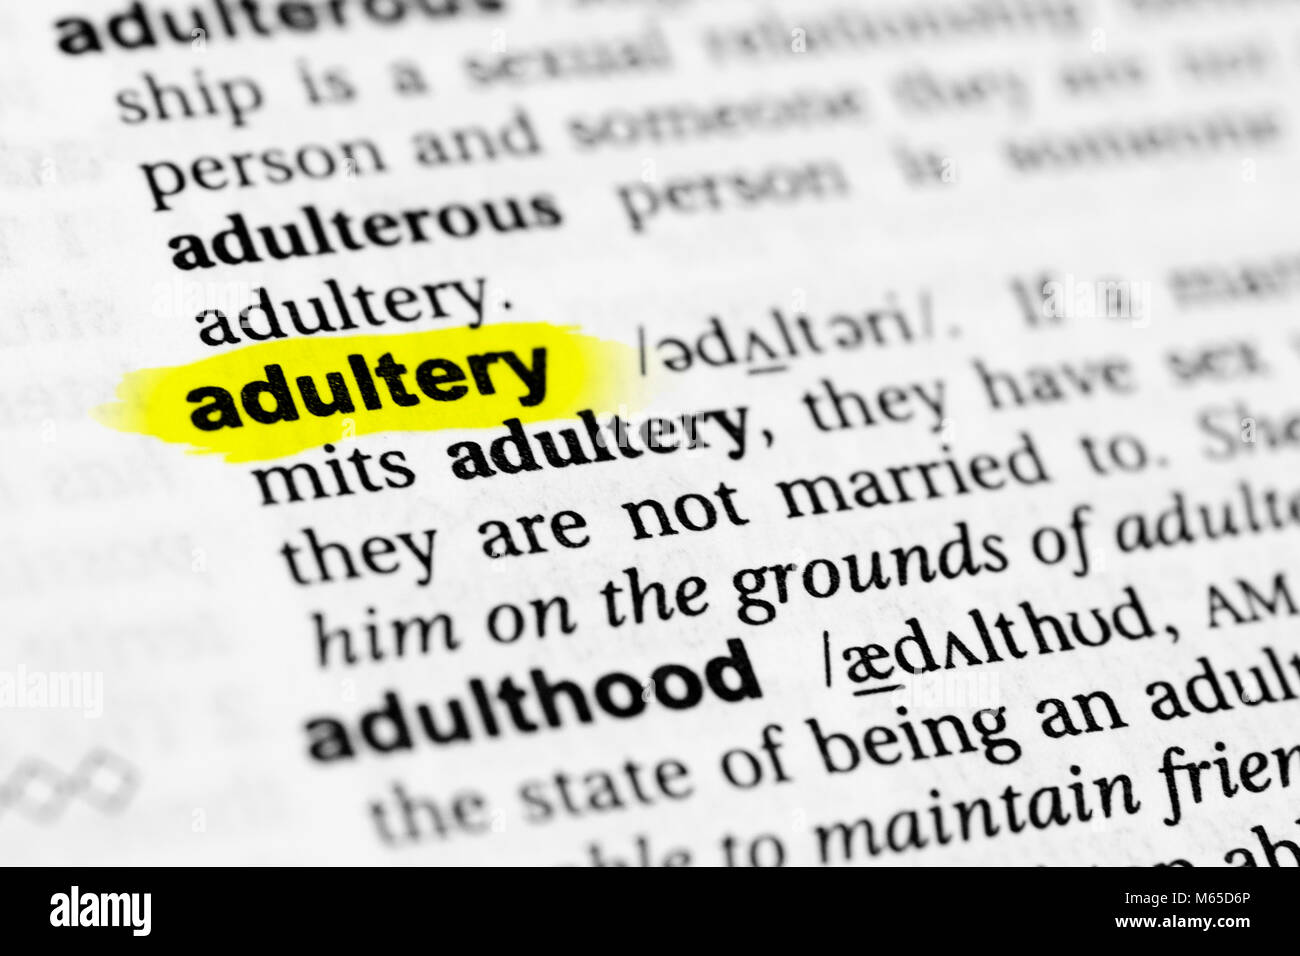 Highlighted English word 'adultery' and its definition in the dictionary. - Stock Image